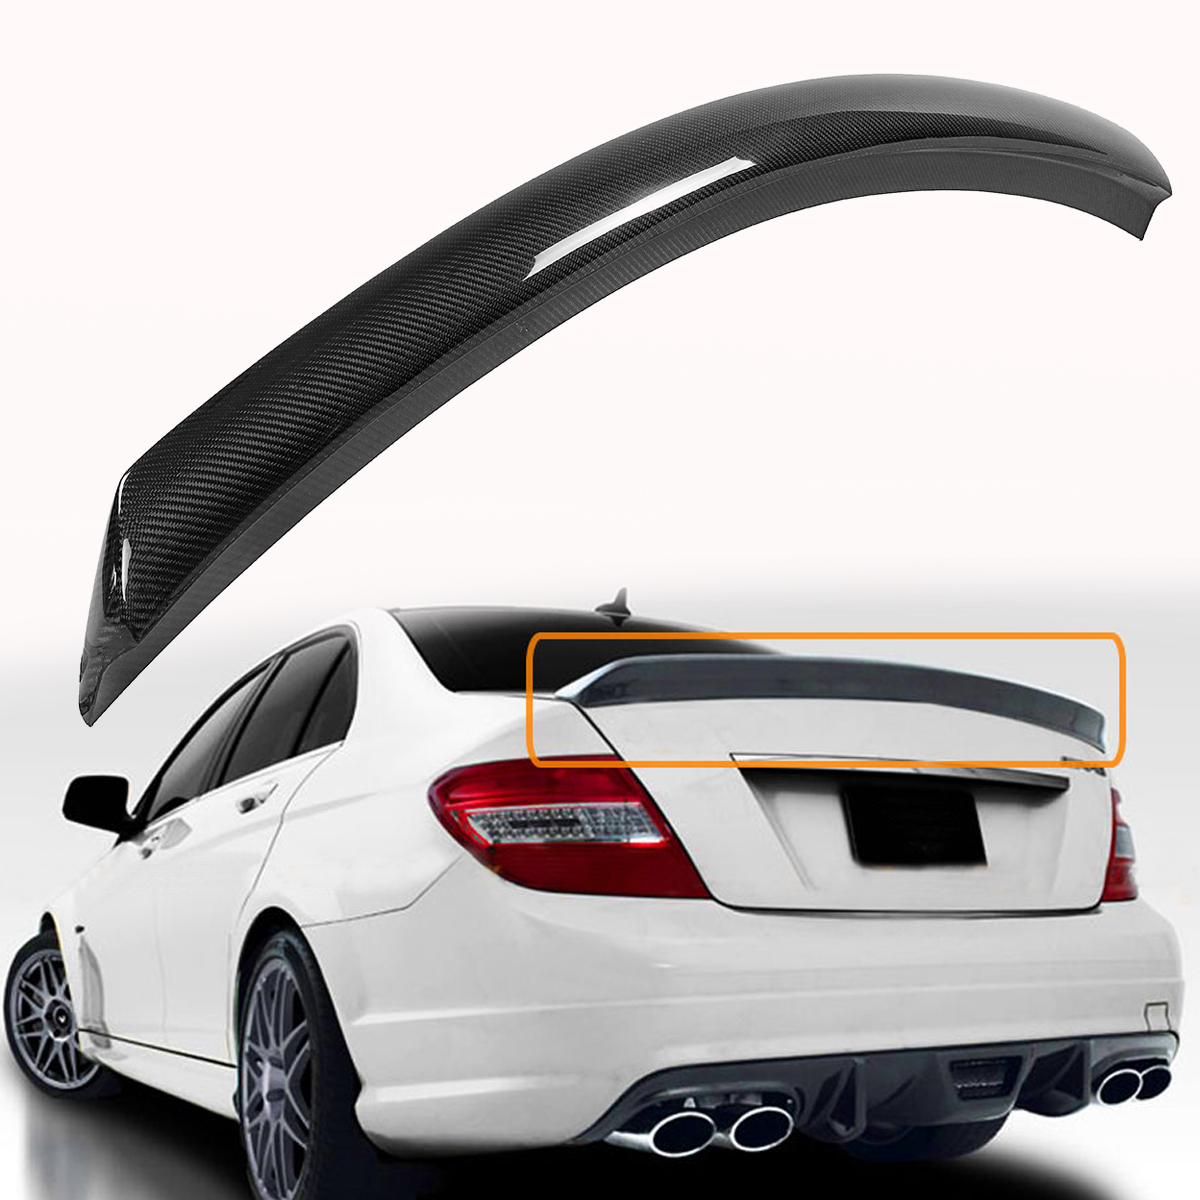 W204 C250 <font><b>C300</b></font> C63 Real Carbon Fiber Car <font><b>Rear</b></font> Trunk <font><b>Spoiler</b></font> Wing For <font><b>Mercedes</b></font> For <font><b>Benz</b></font> 2008-2014 4 Door V Style Wing Spolier image